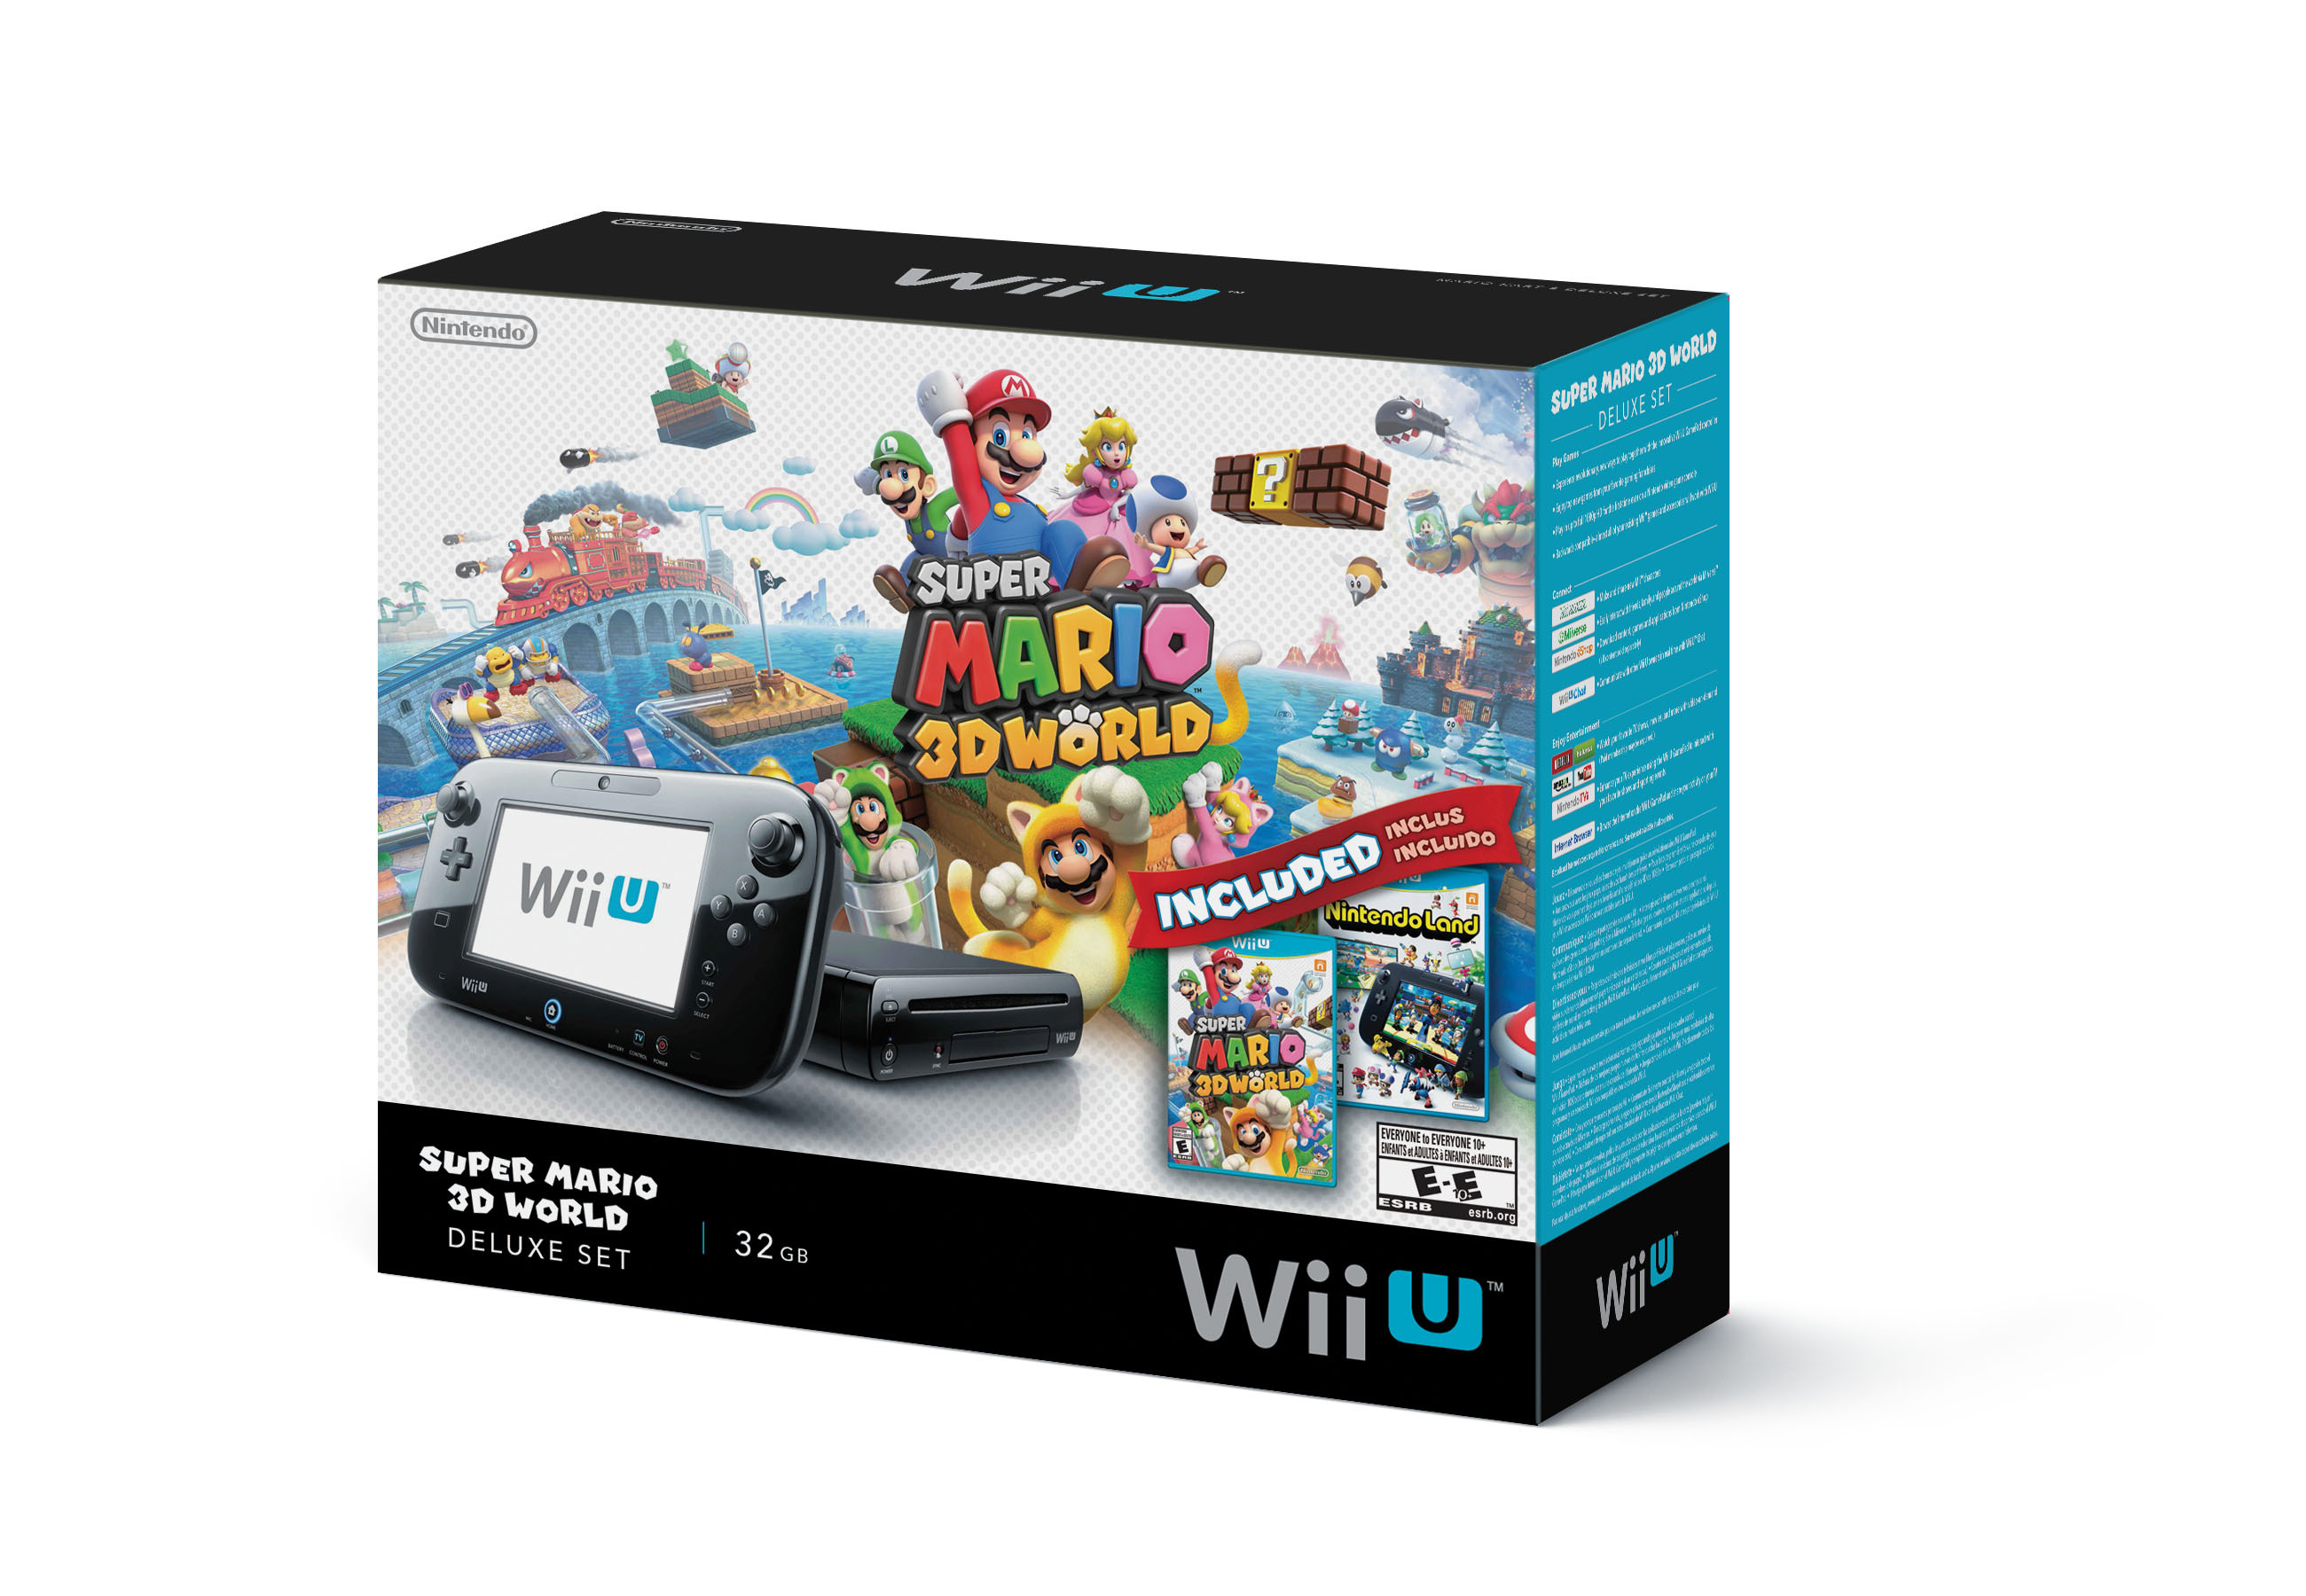 Starting mid-September, the new Wii U Deluxe Set will include the Wii U console and physical Super Mario 3D World and Nintendo Land games at a suggested retail price of $299.99. (Photo: Business Wire)